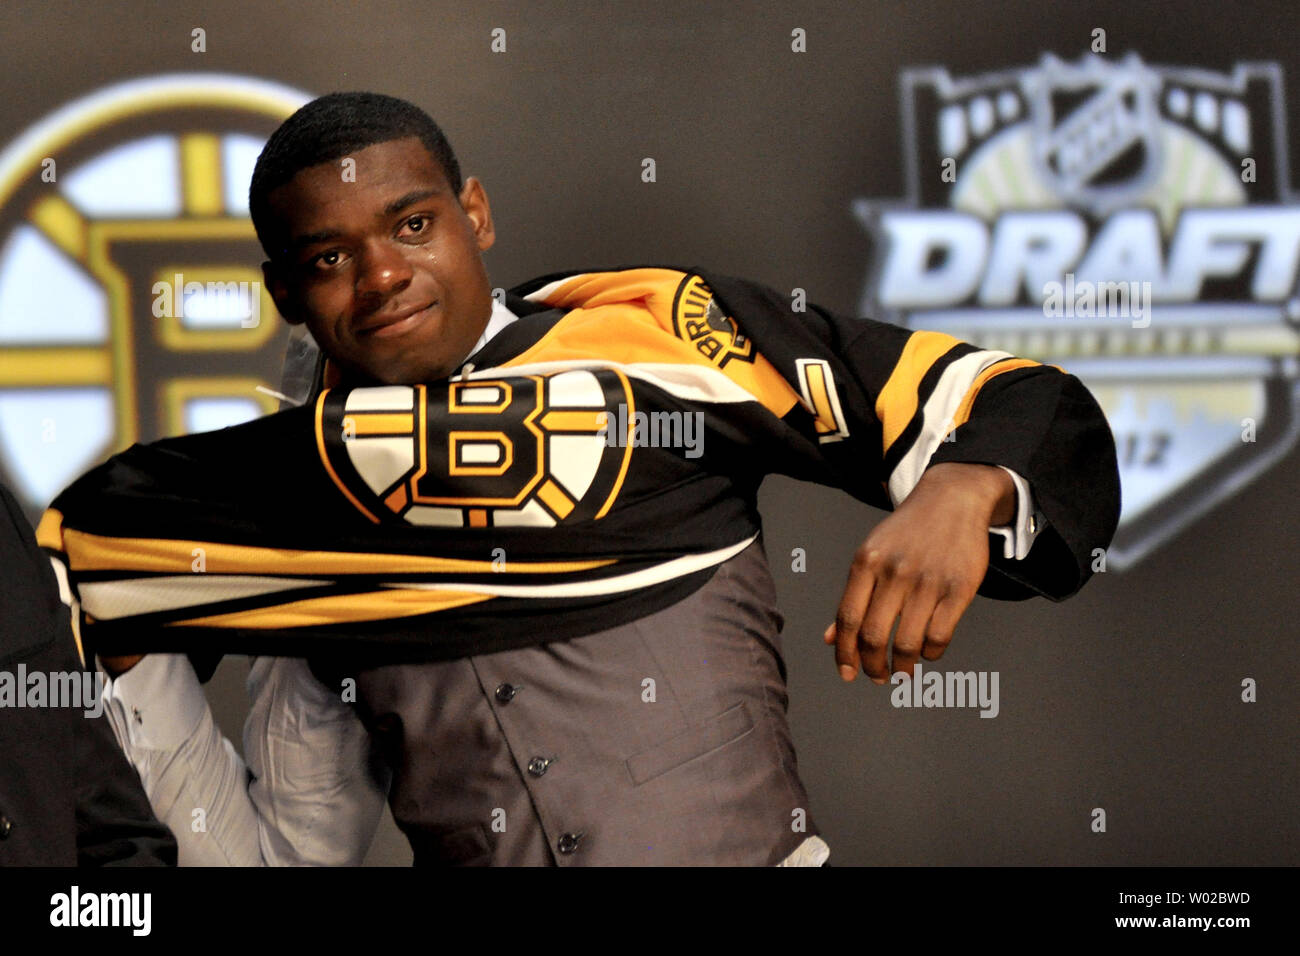 Subban Stock Photos Subban Stock Images Alamy